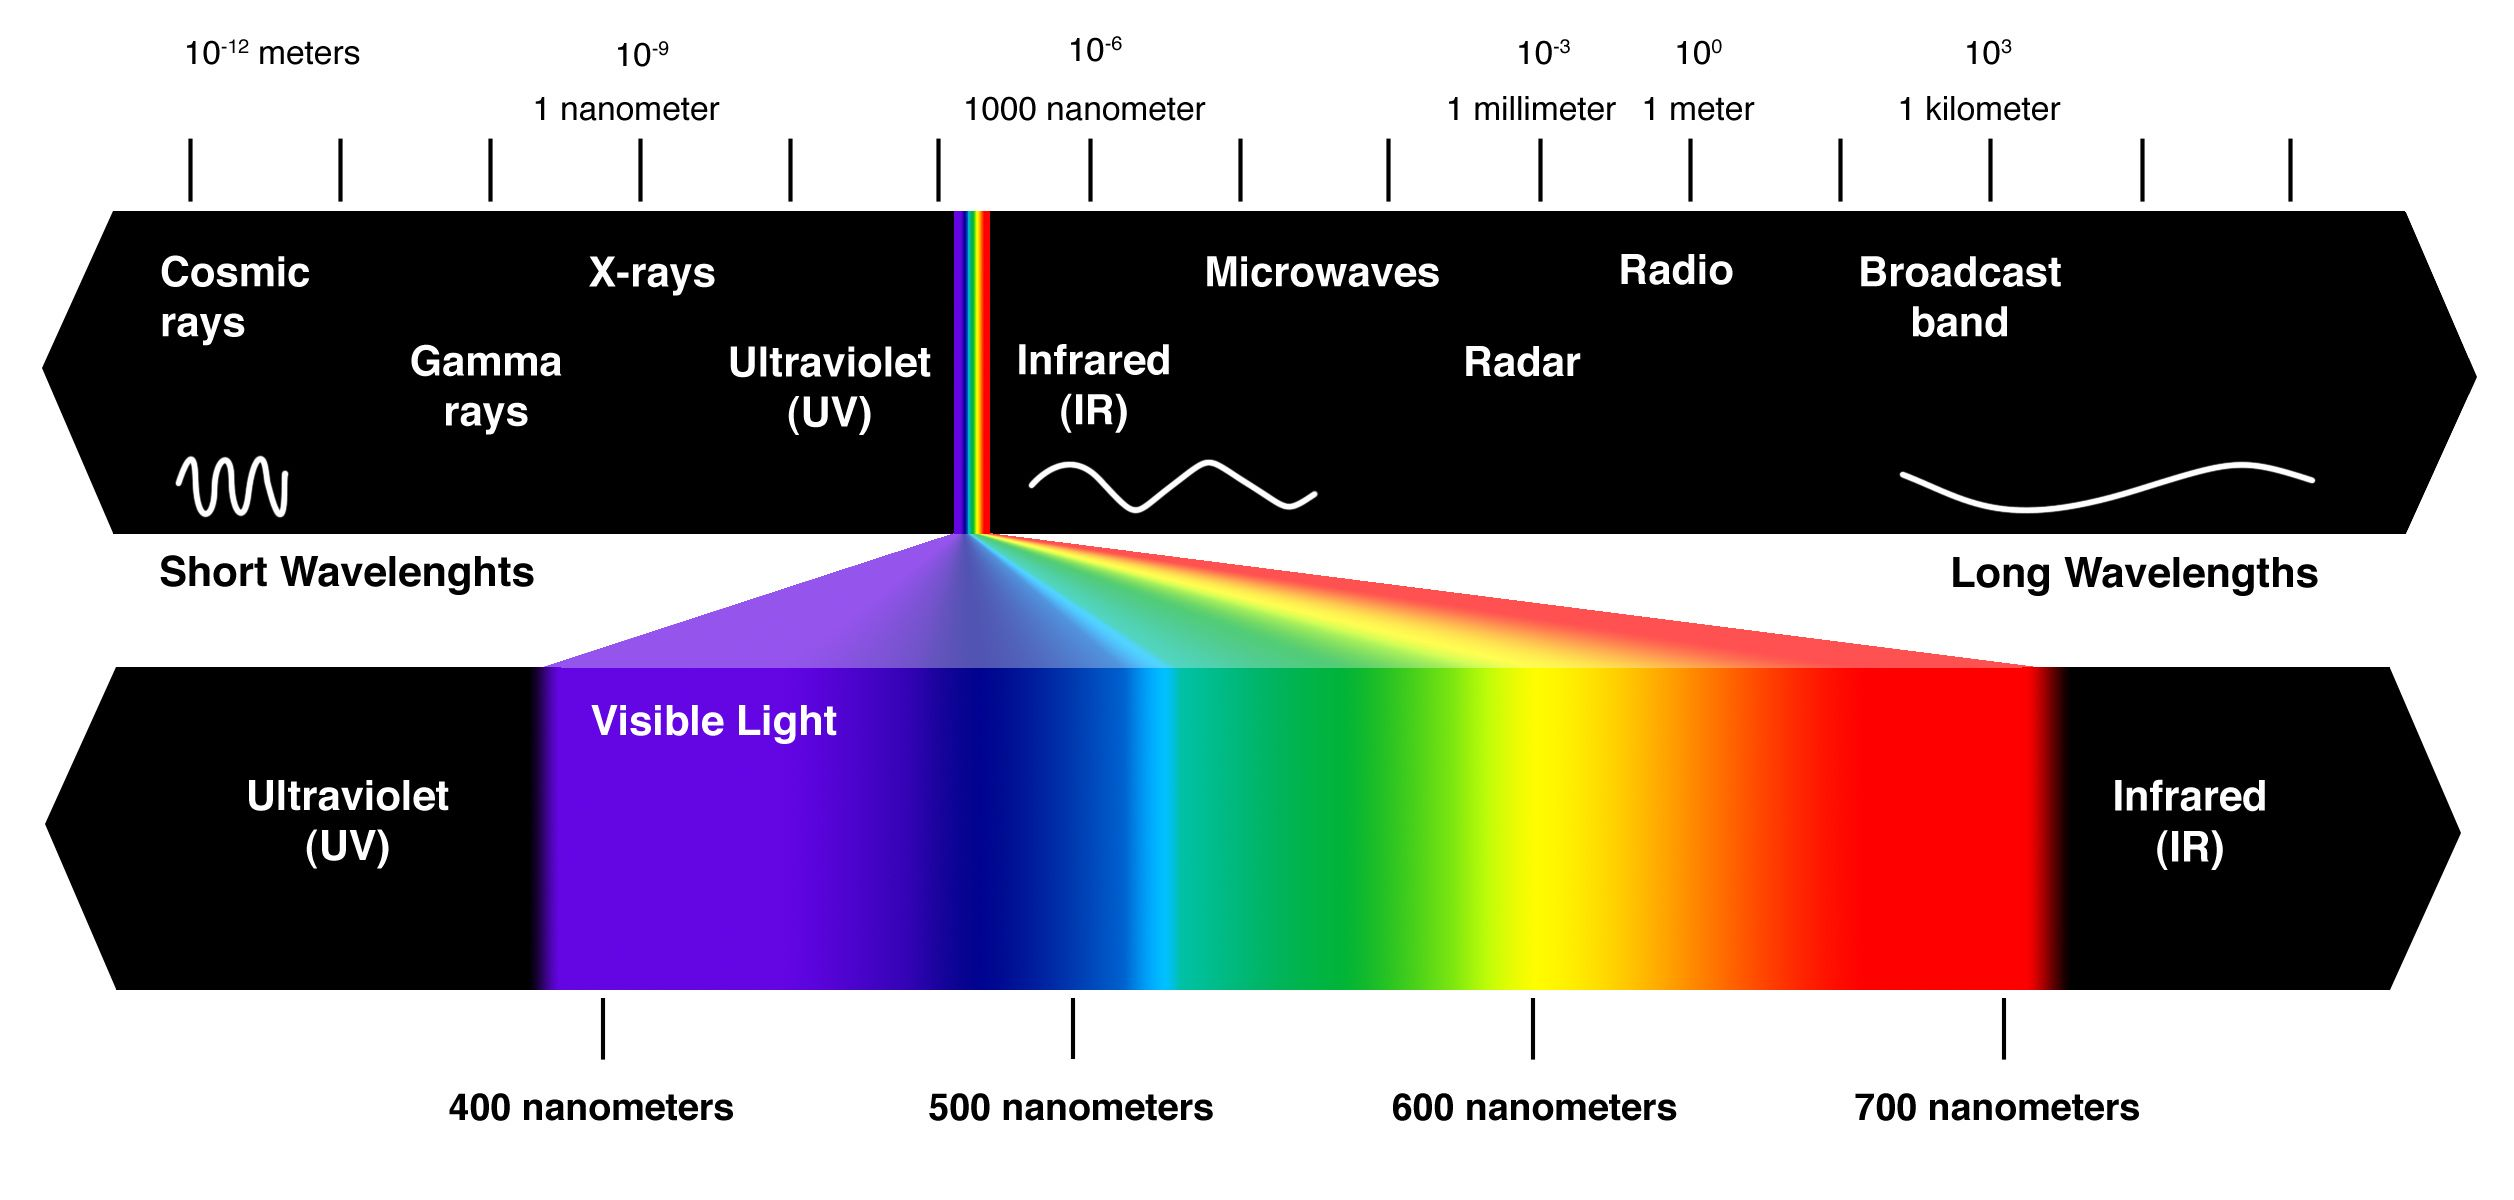 What Is The Wavelength Of A Photon Of Blue Light Whose